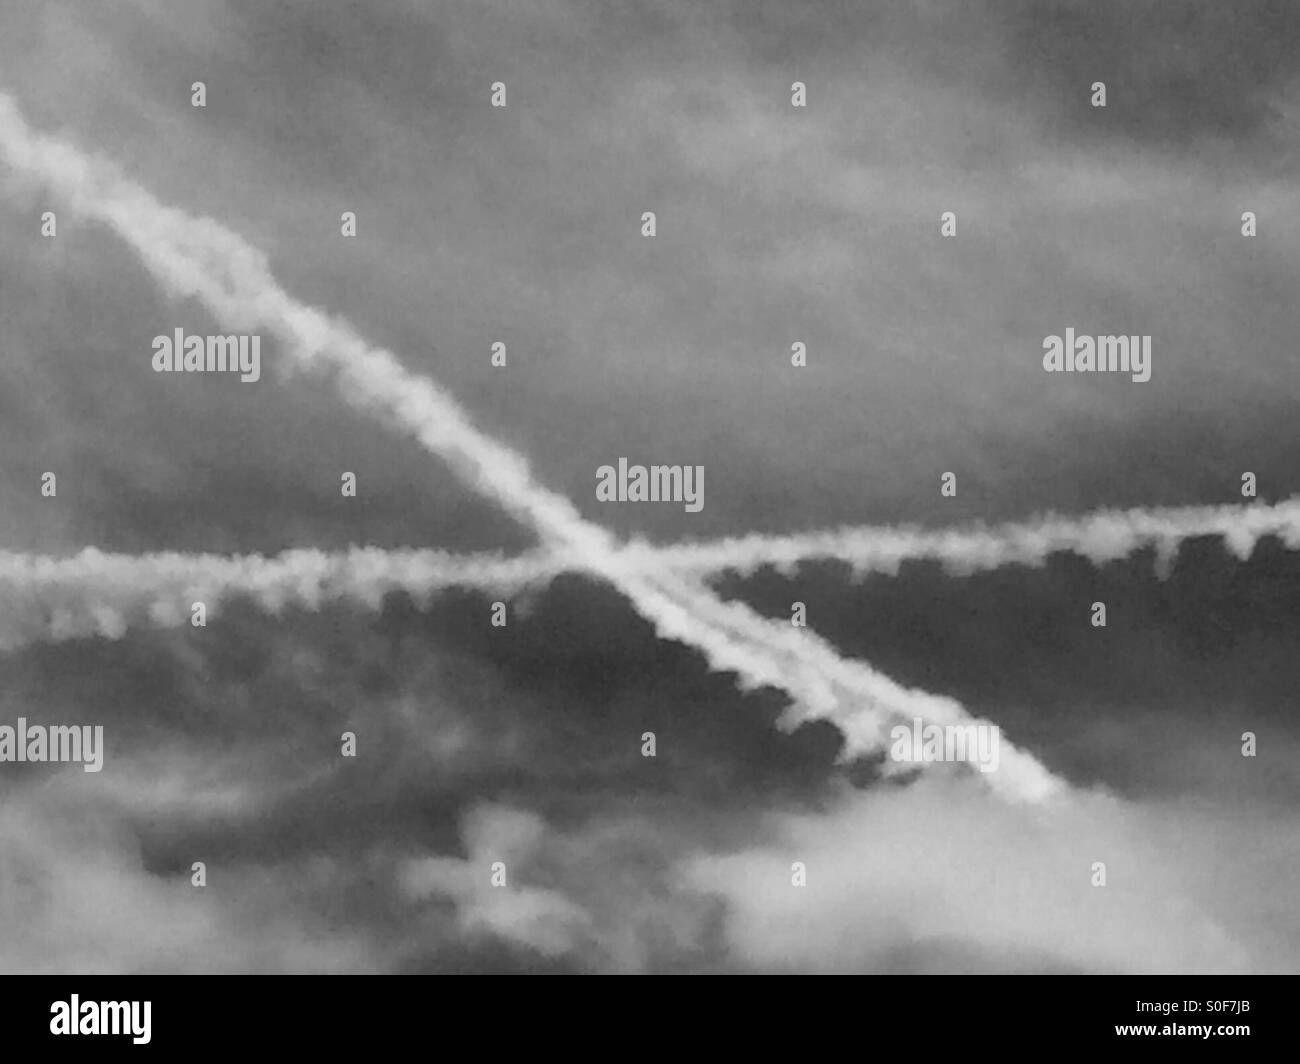 Airplane trails in the sky. - Stock Image